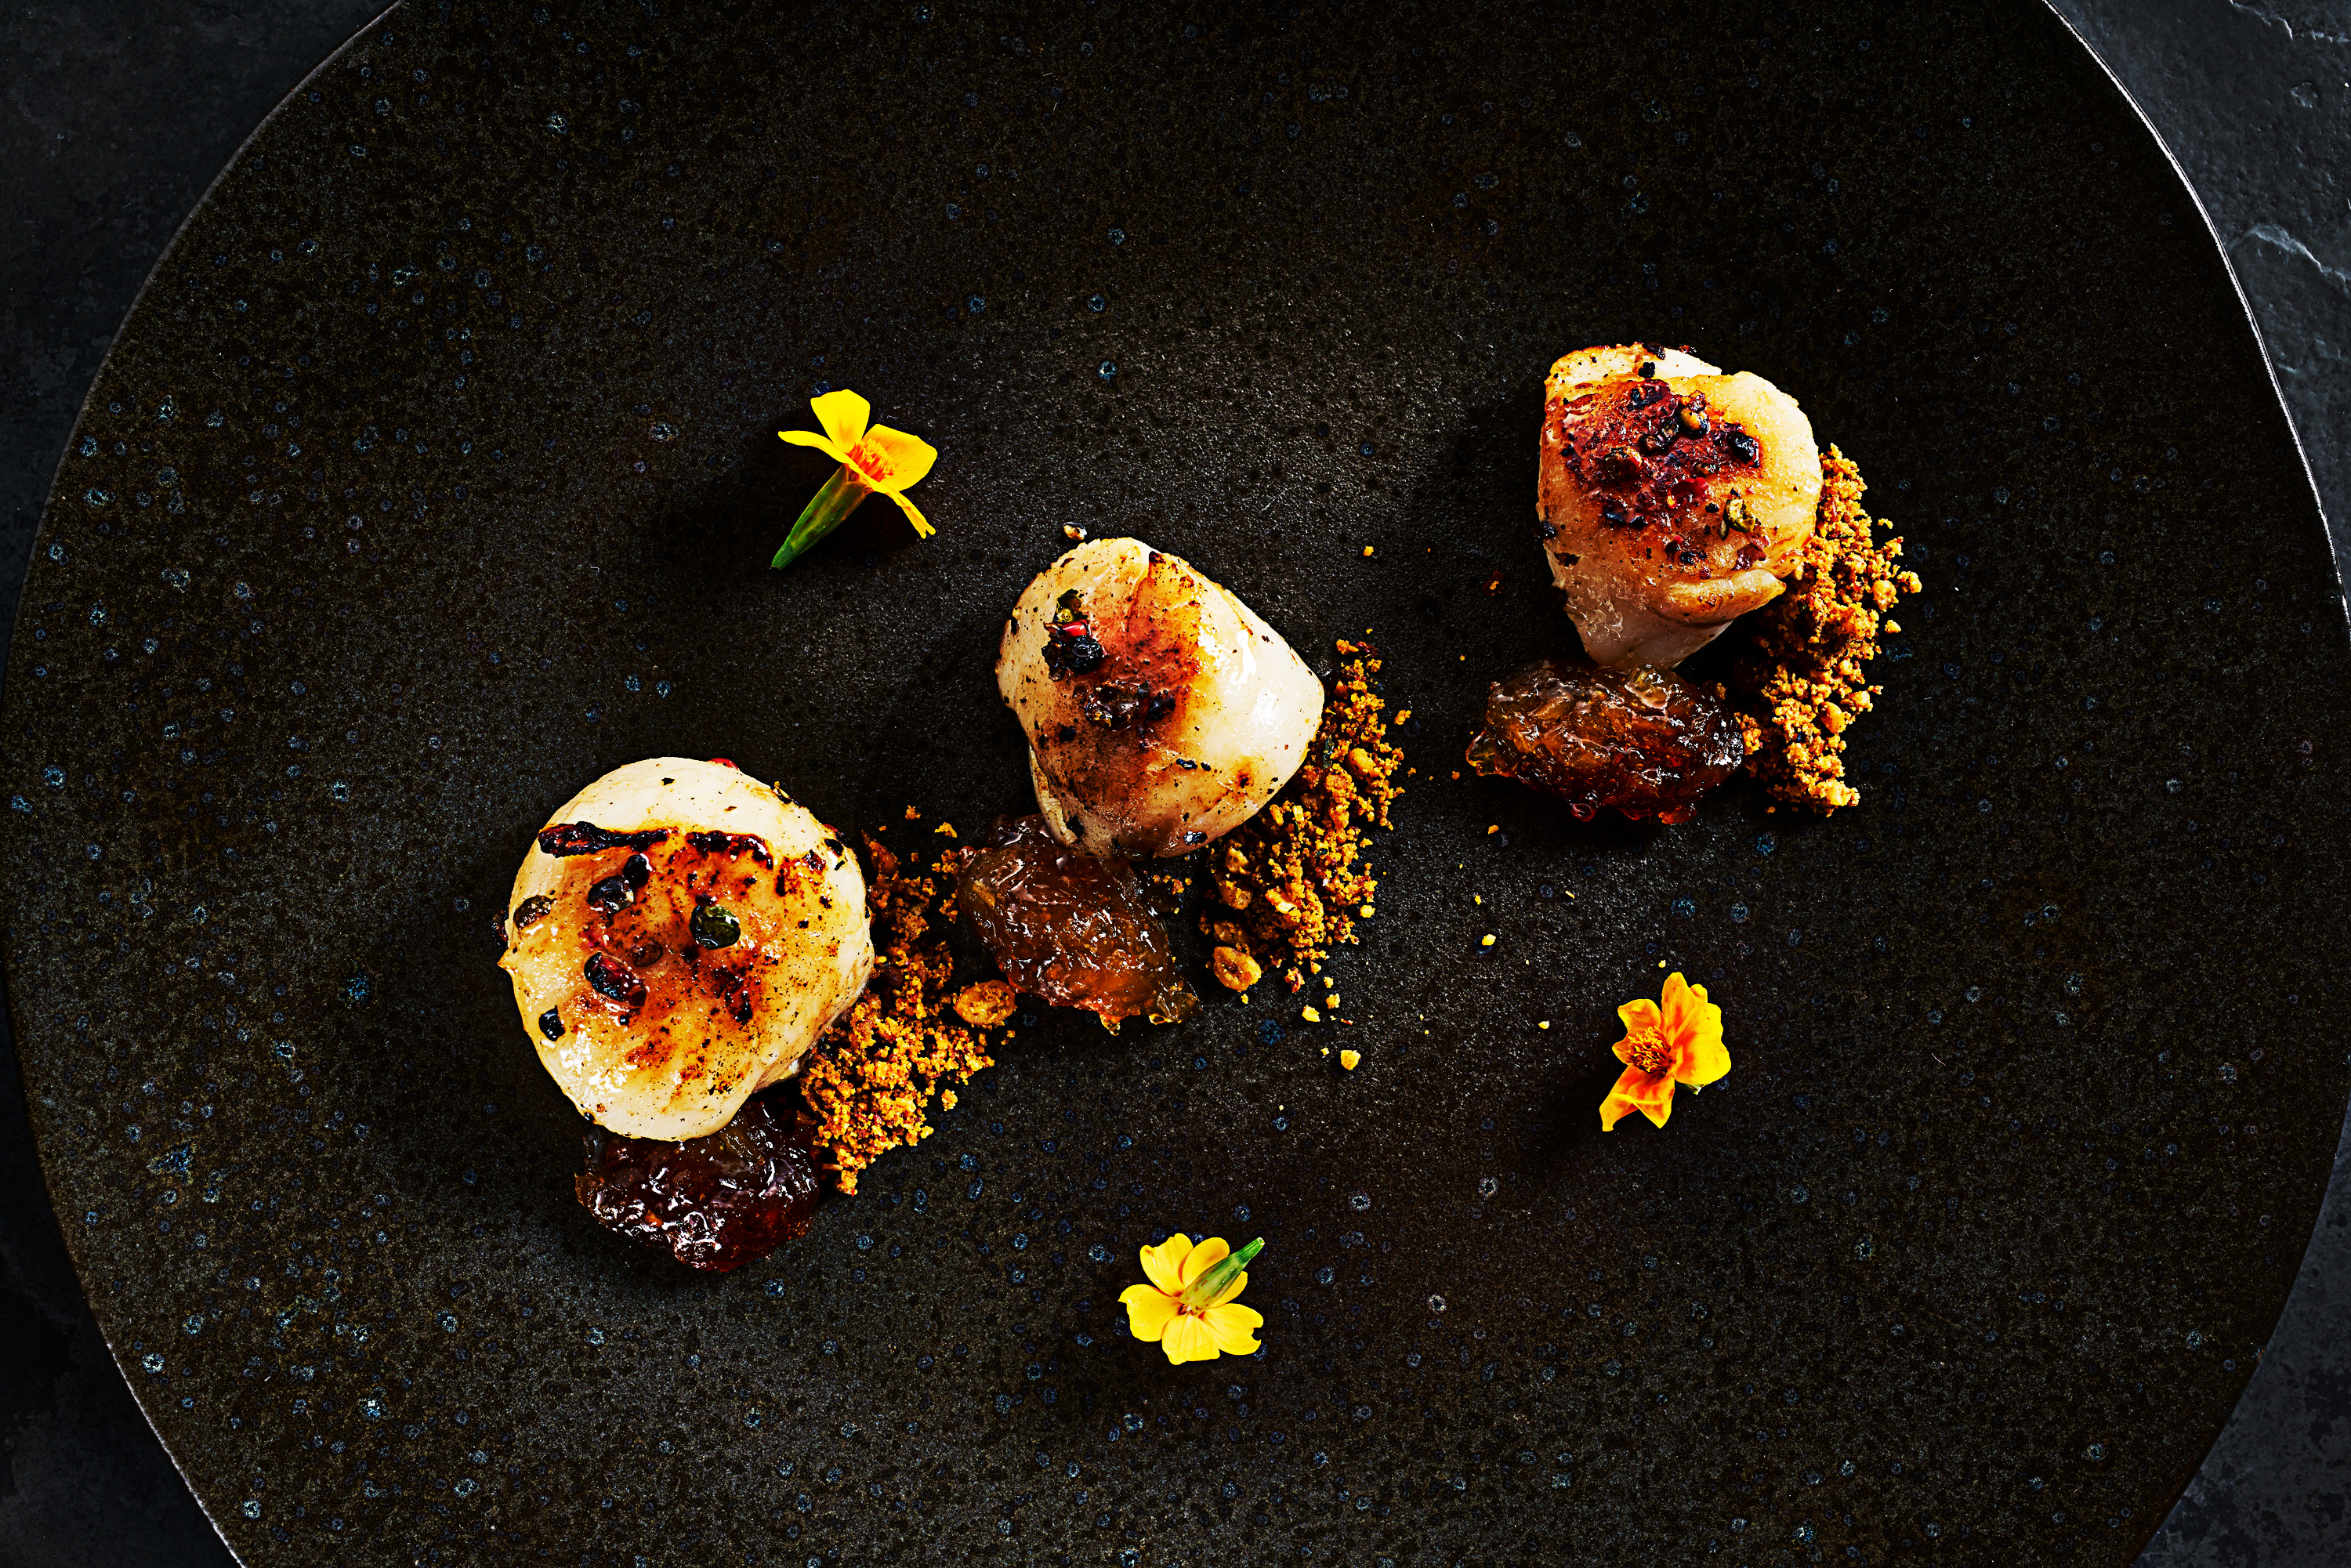 Photograph of Indian style scallops by London food photographer, Michael Michaels